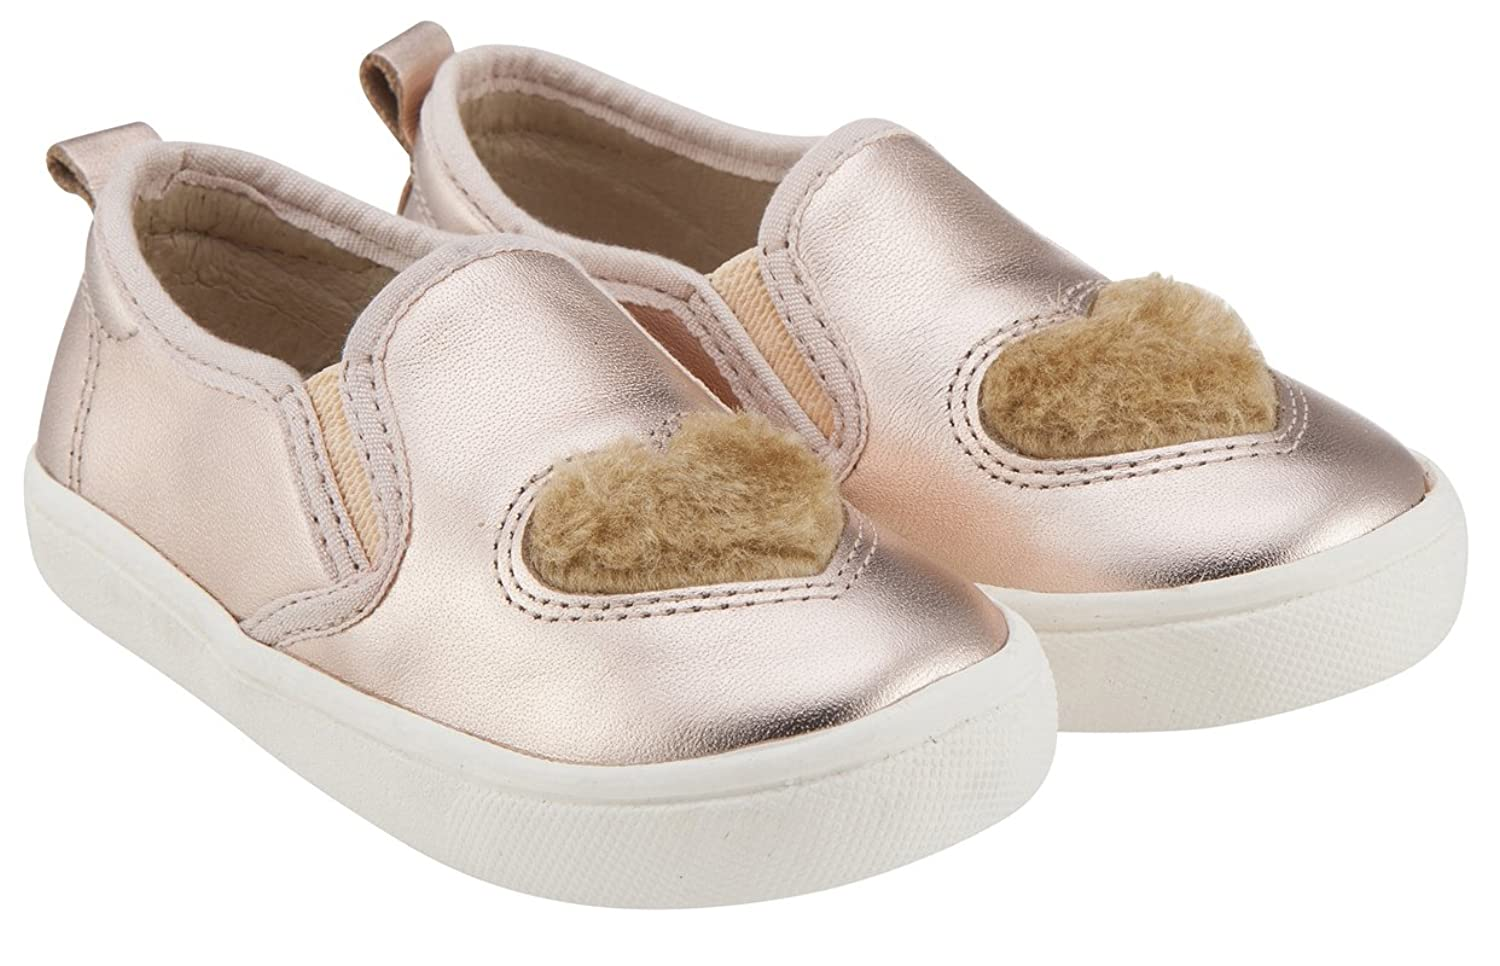 Old Soles Girl's Hoff Heart Soft Plush Fur Heart Upper Smooth Leather Slip  On Loafer Sneaker: Amazon.ca: Shoes & Handbags